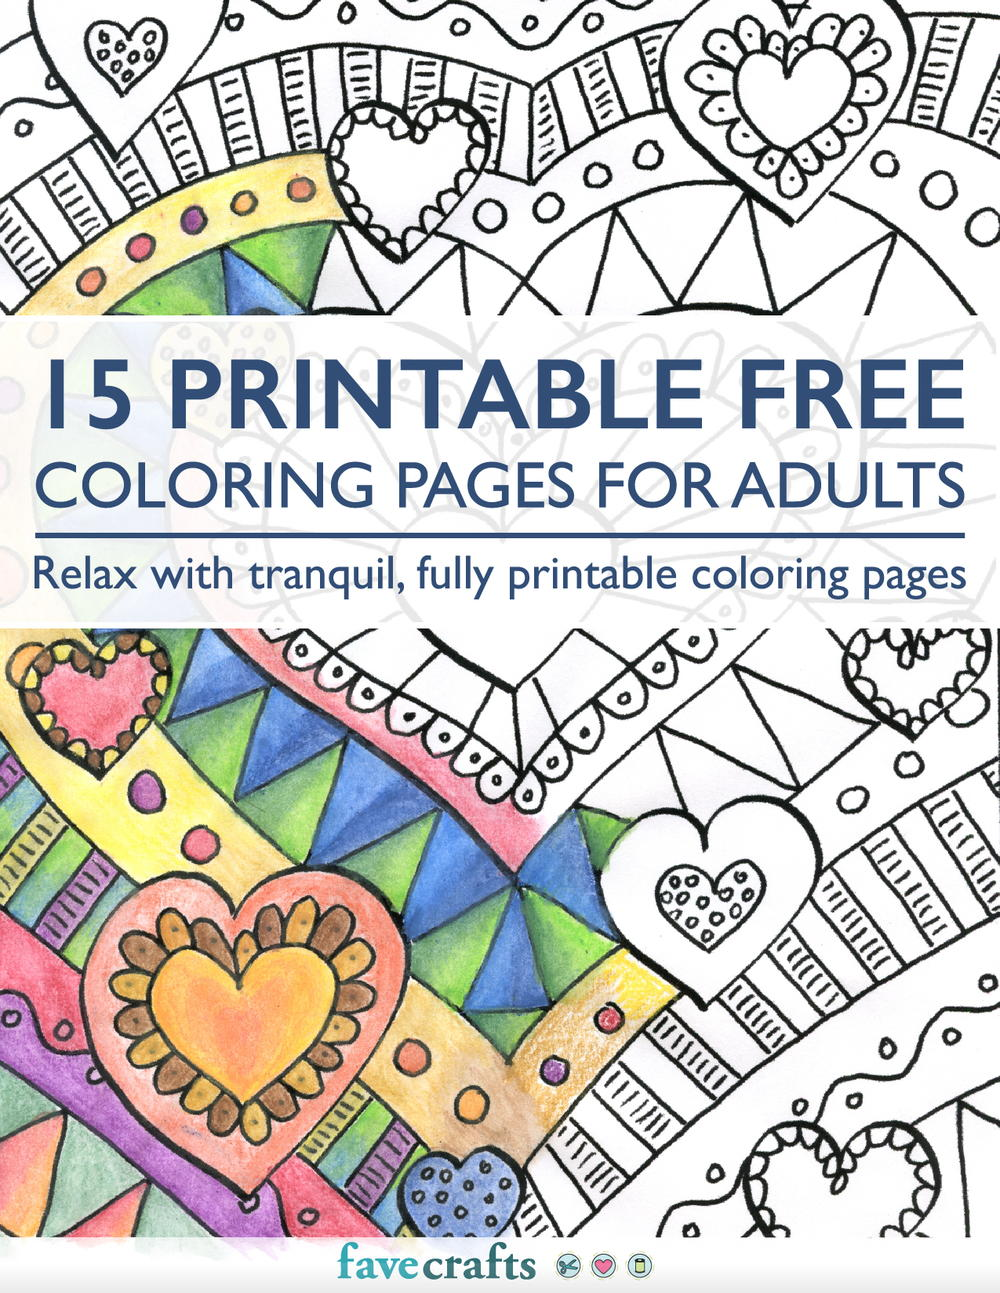 15 Printable Free Coloring Pages for Adults [PDF ... | free online coloring pages for adults easy